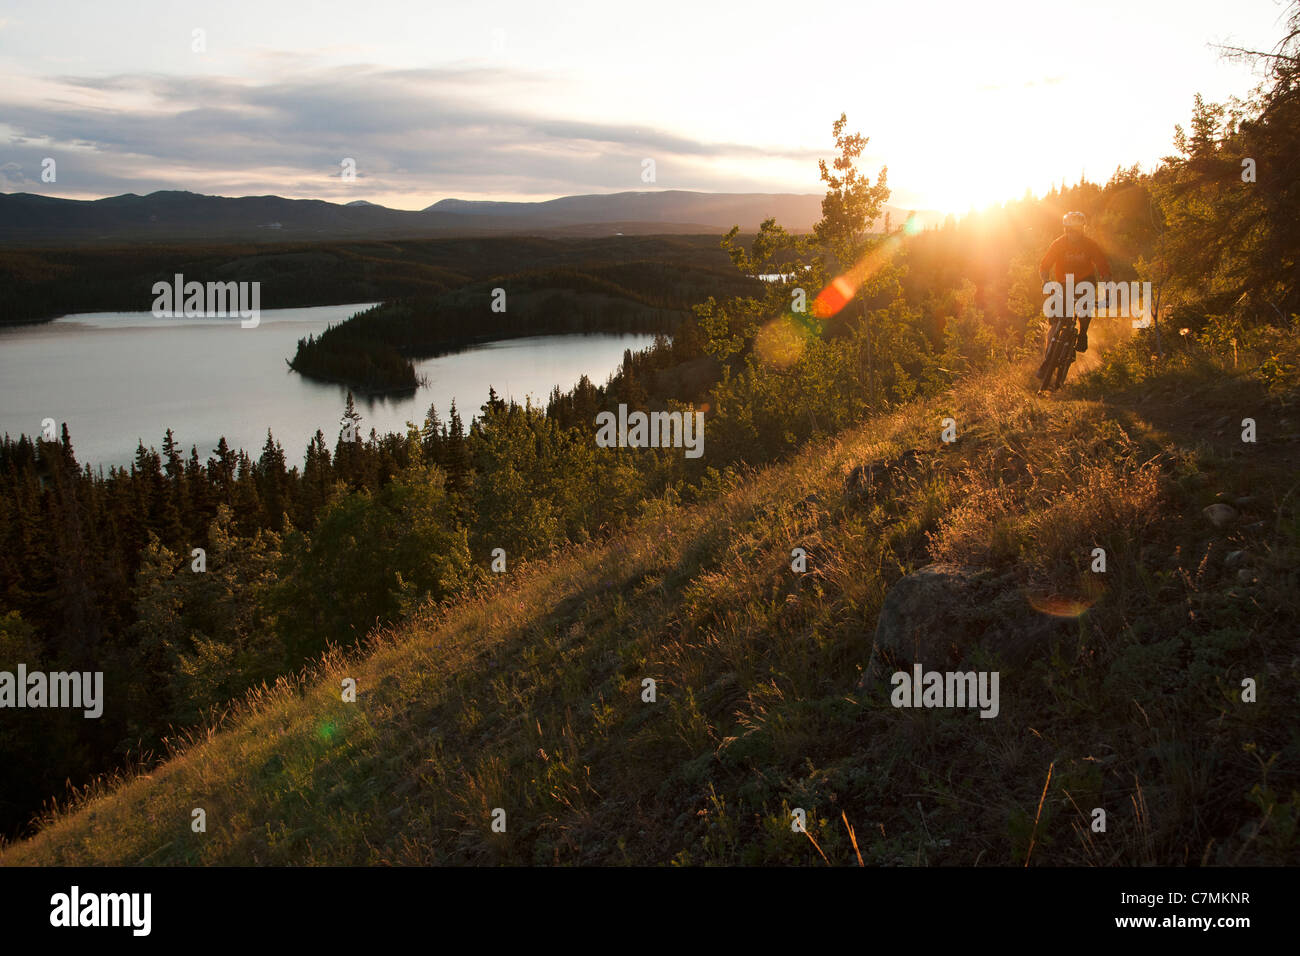 A mountain biker rides a trail under the midnight sun in Whitehorse, Yukon Territory, Canada - Stock Image